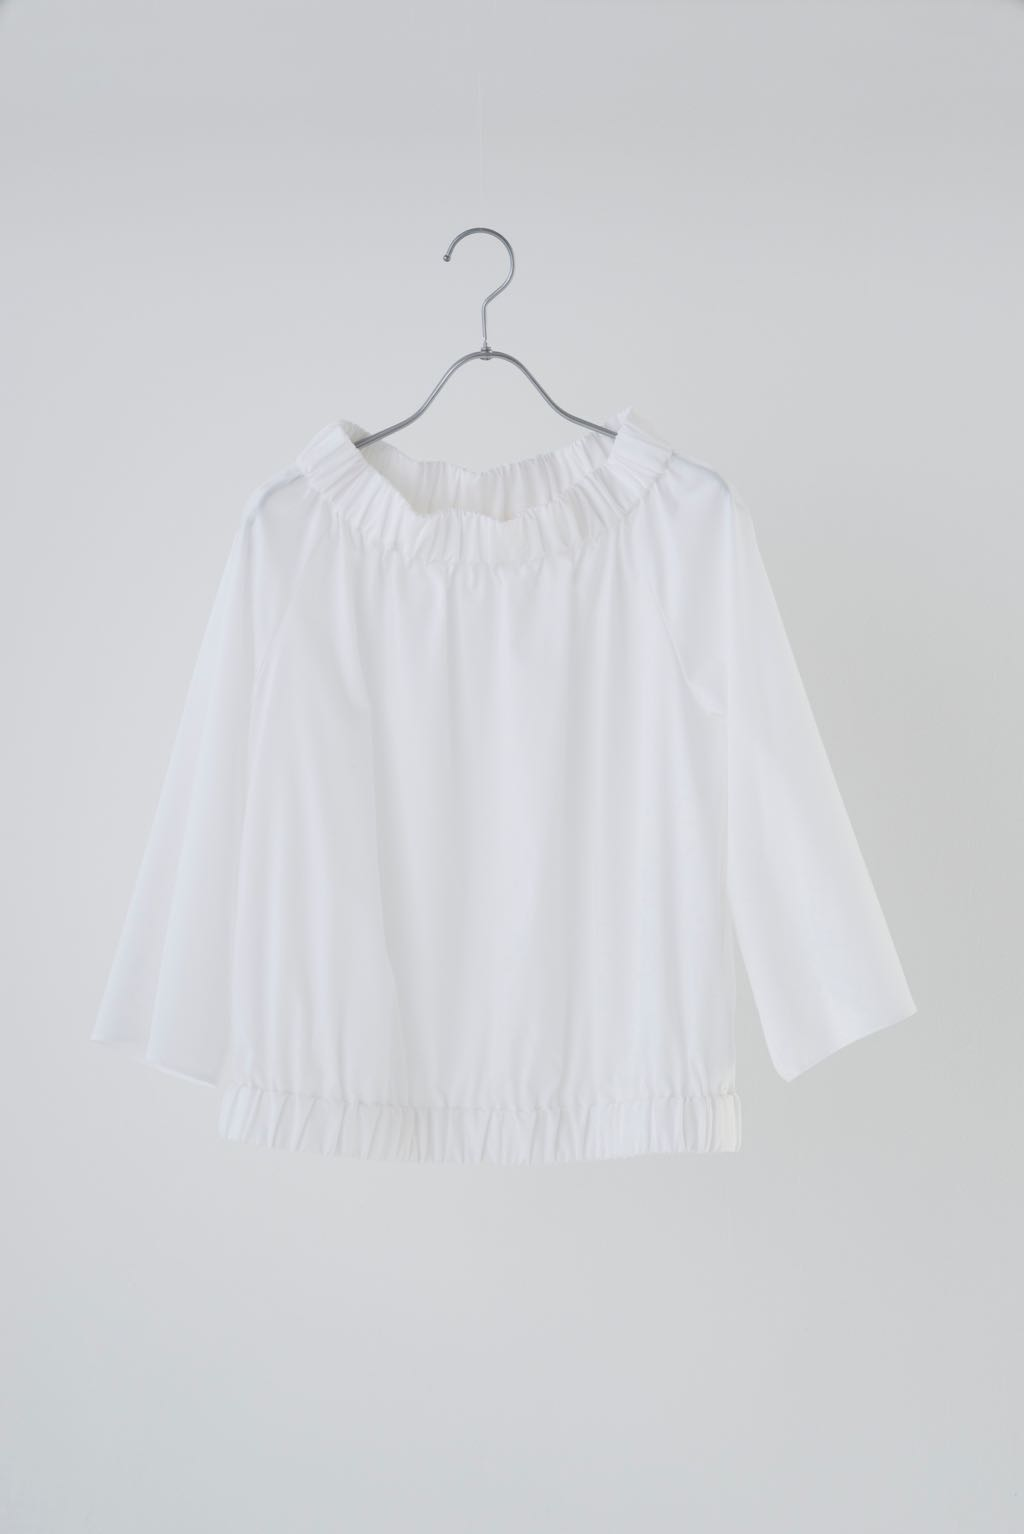 COTTON GATHERS TOP 174024 ¥15,000+tax